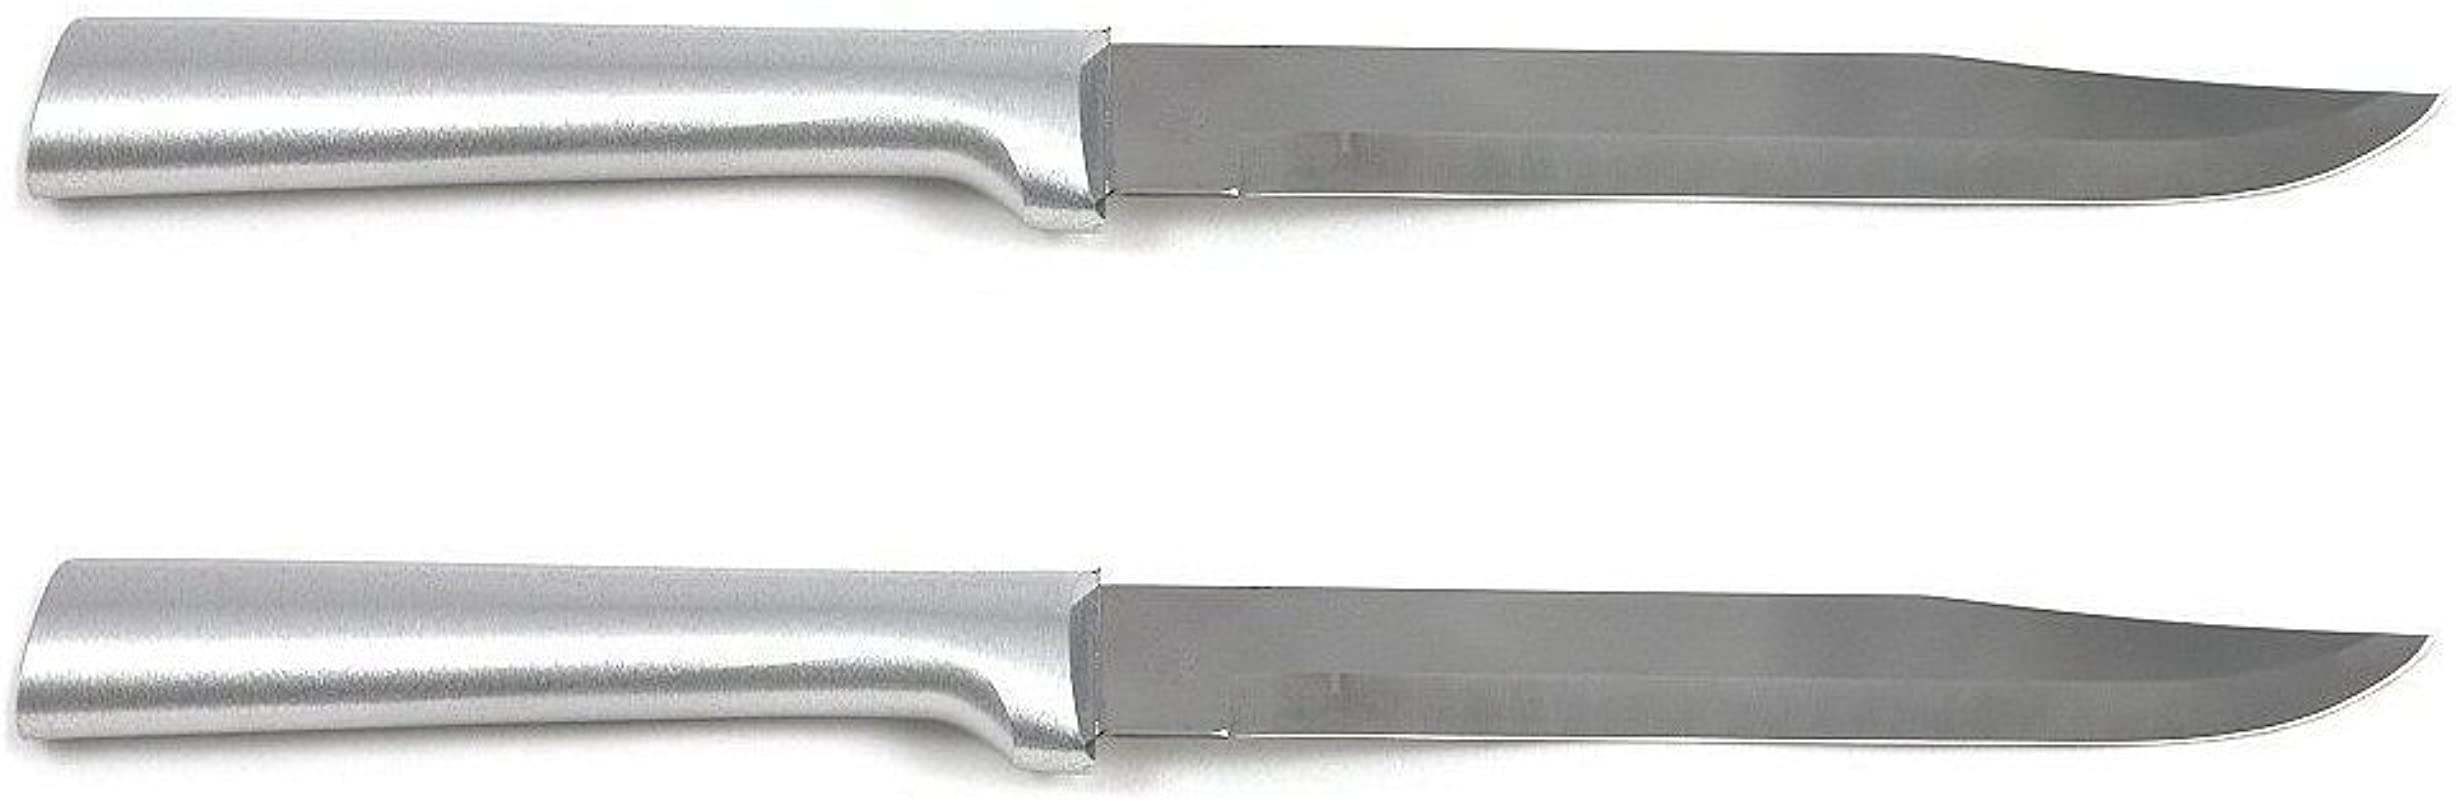 Rada Cutlery Utility Steak Knife With Aluminum Handle Pack Of 2